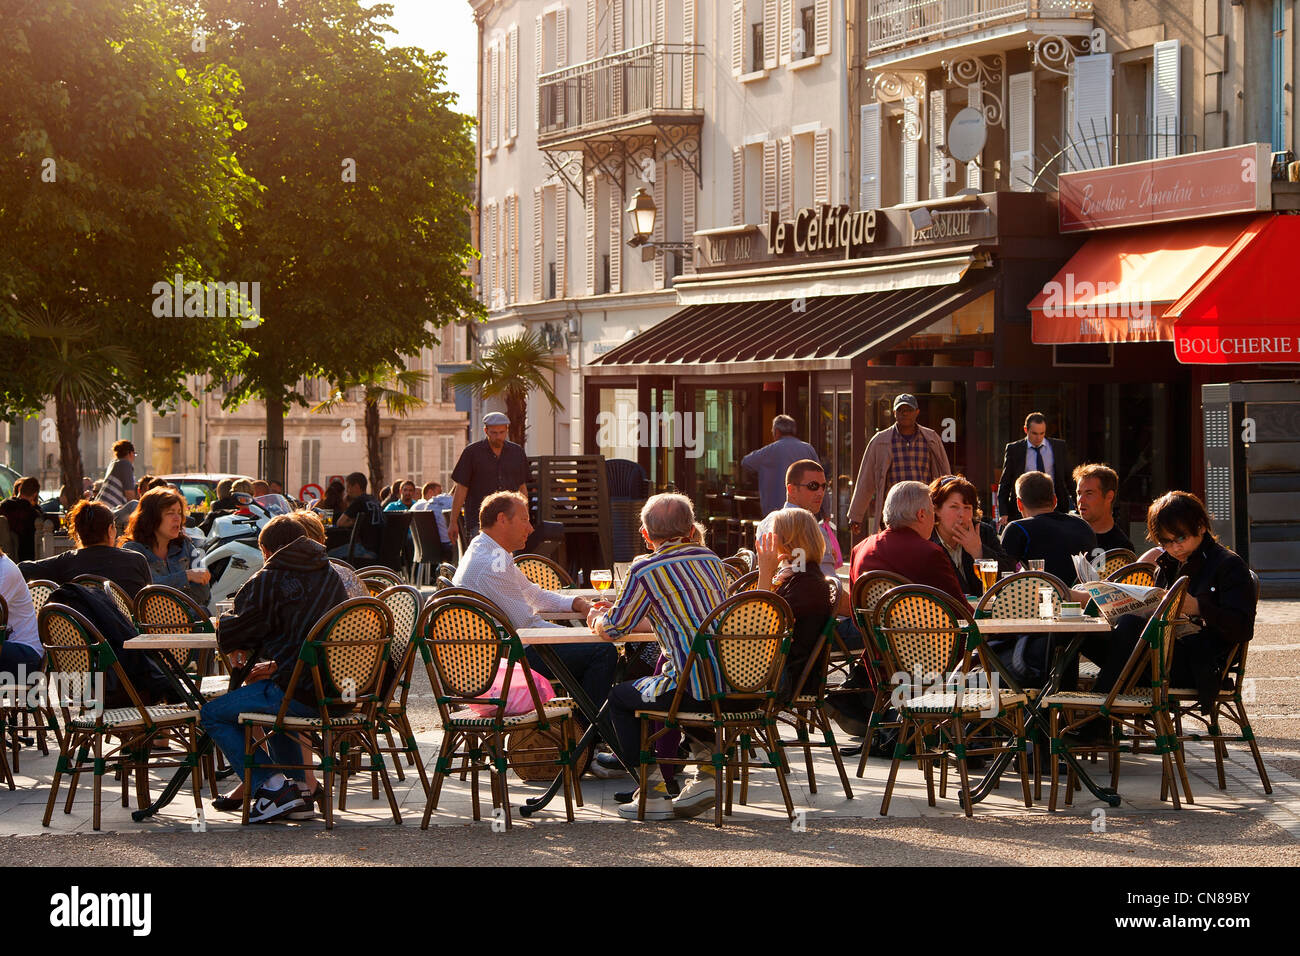 France, Yvelines, Rambouillet, terrace on public square in the donwtown - Stock Image